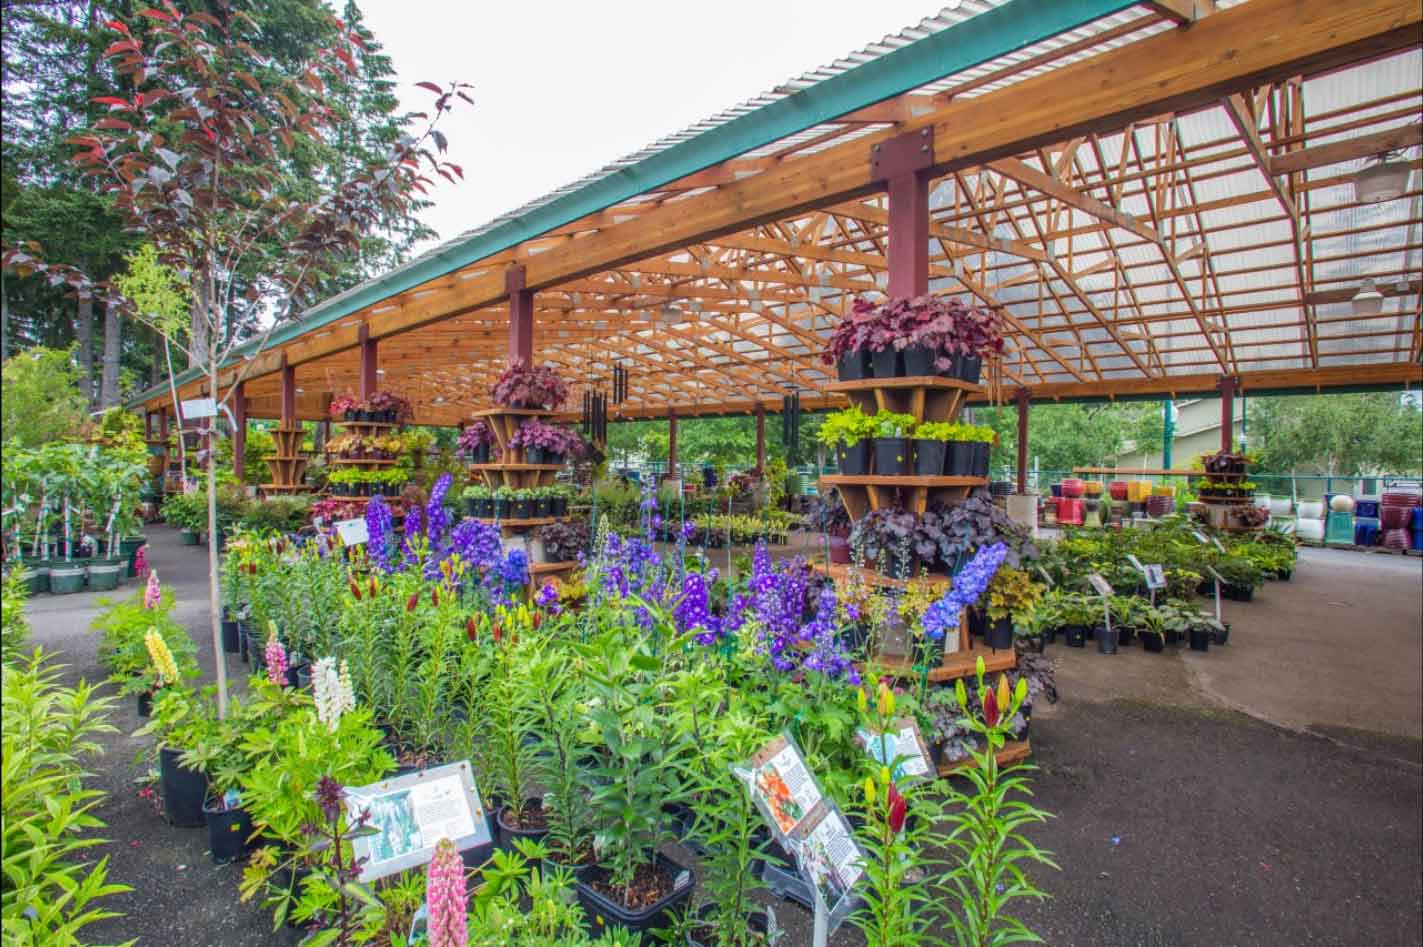 While You Take In The Sights, You Can Pick Up Supplies For Your Home Garden  And Landscape. Our Complete Line Of Plants Is Always Fully Stocked.